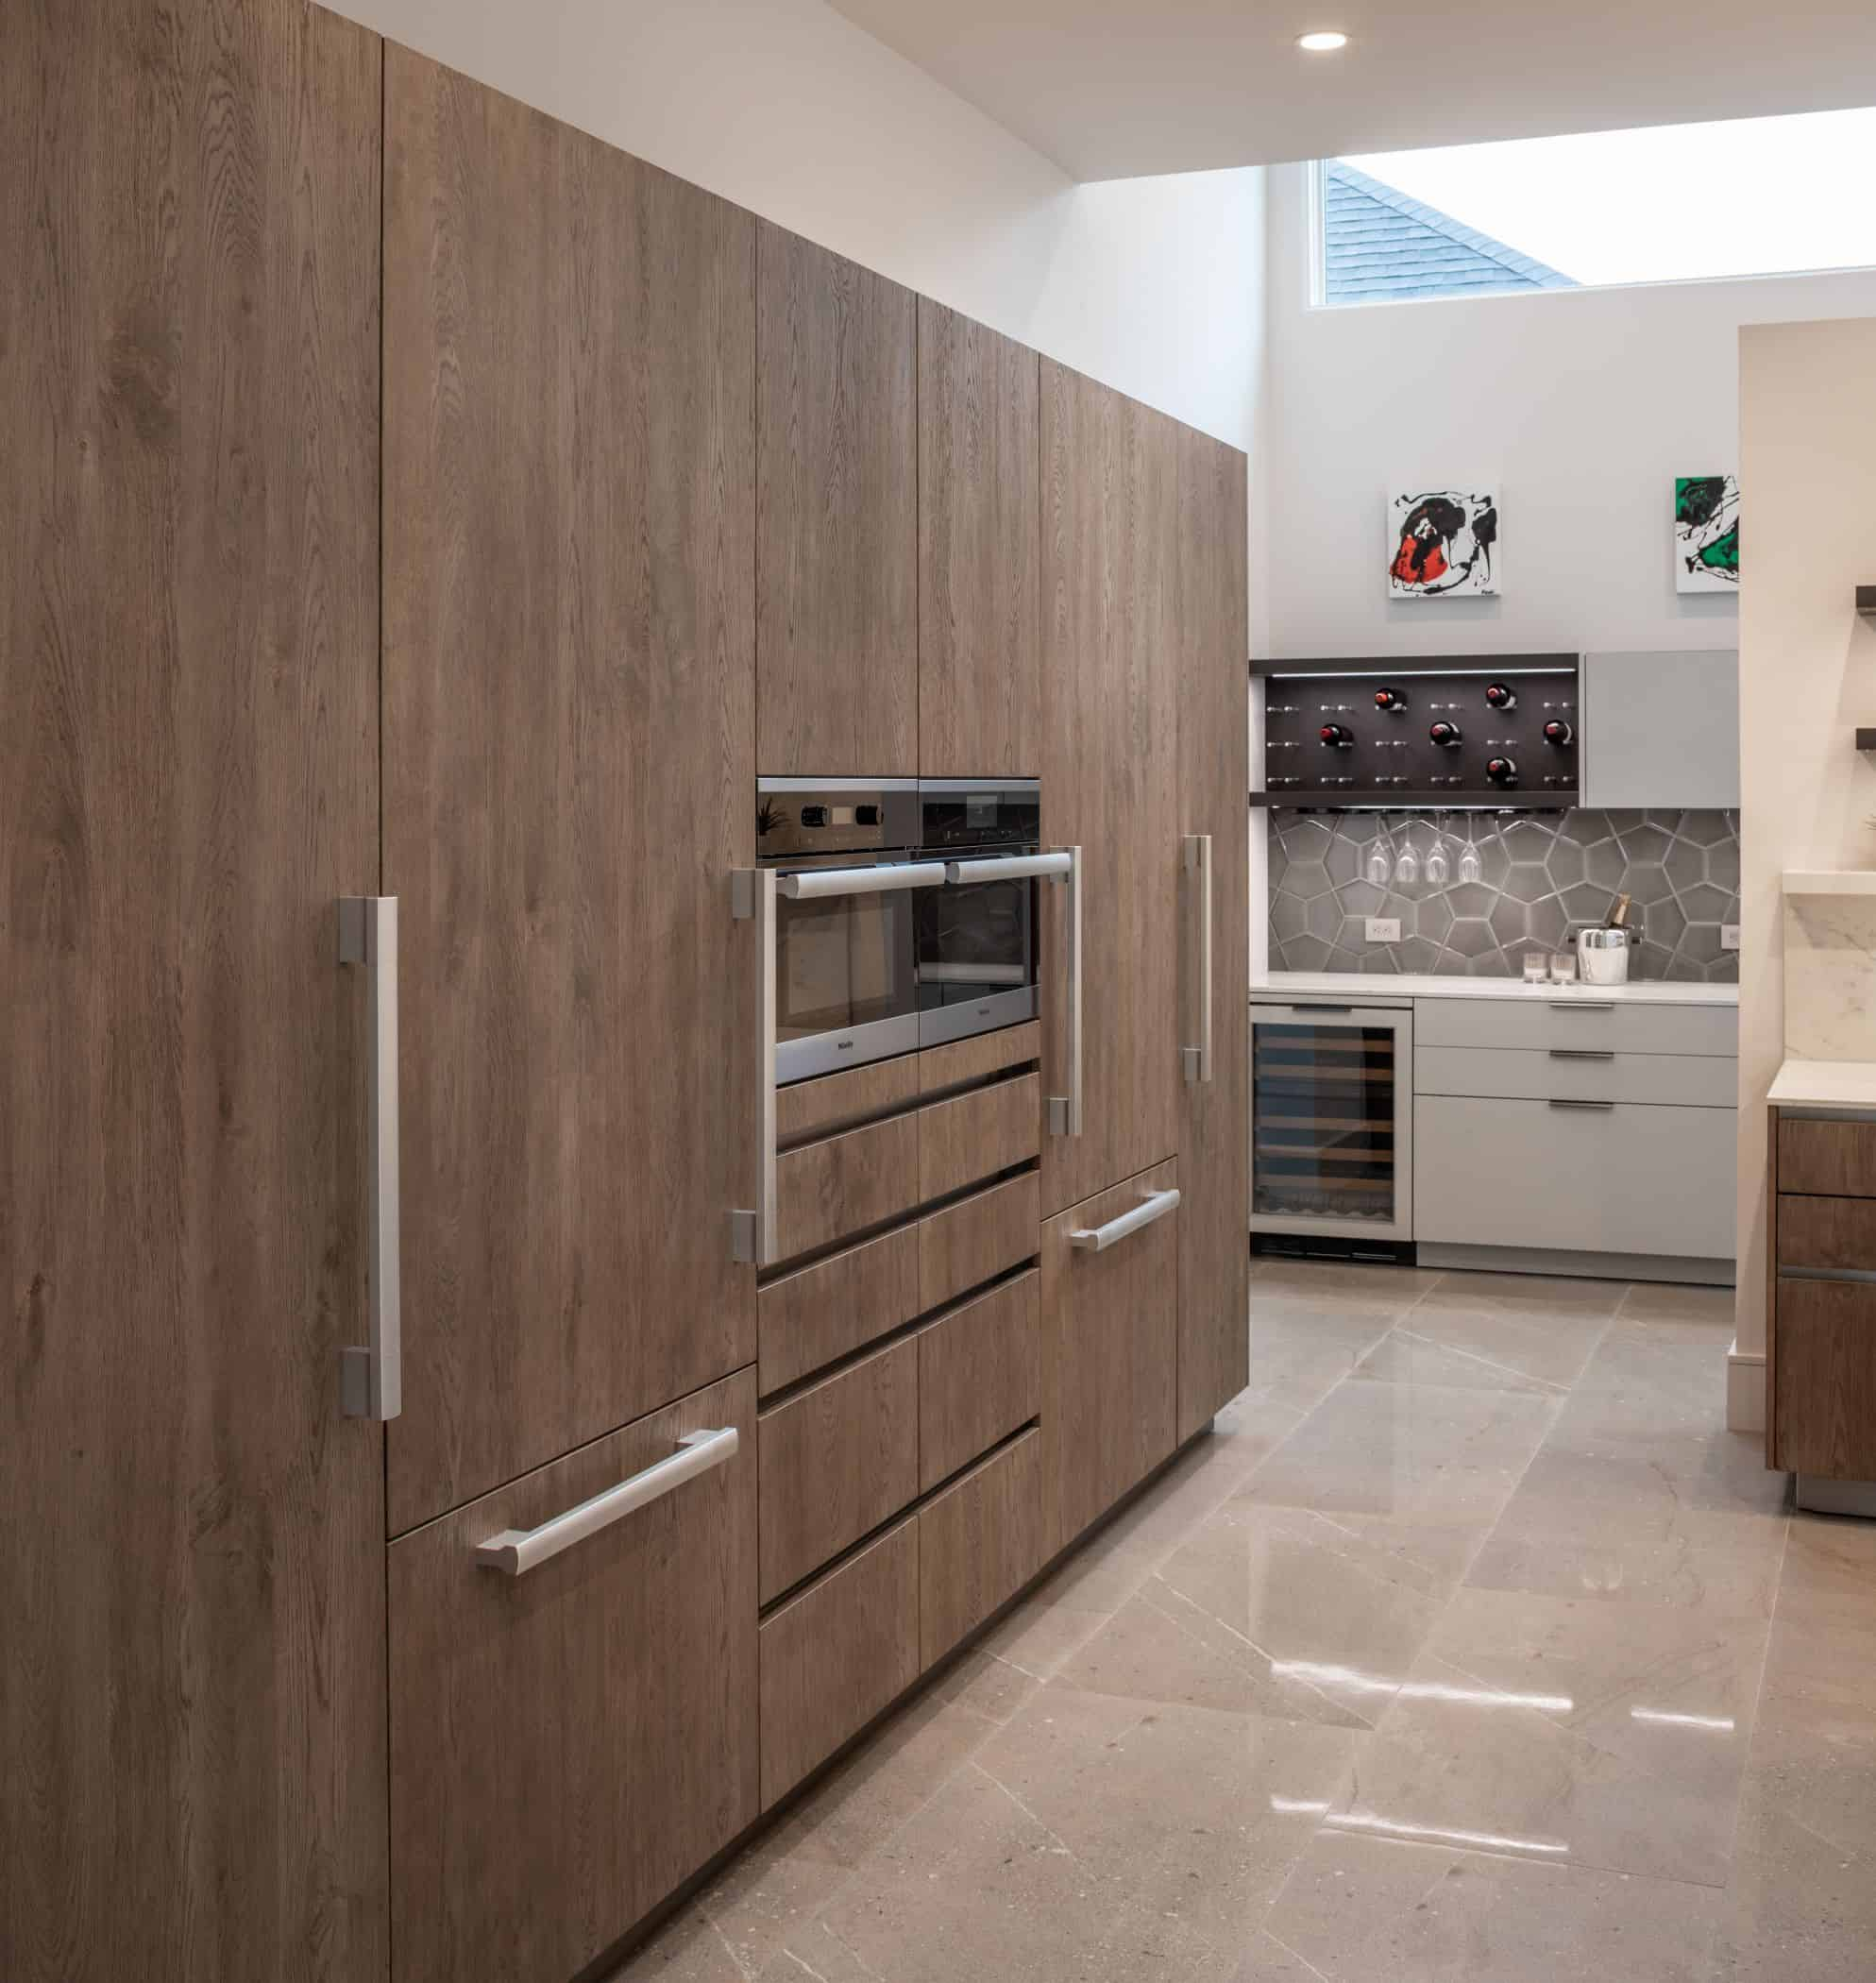 integrated appliance wall and hidden pantry in german cabinetry of a washington coalition memorial park area home in houston